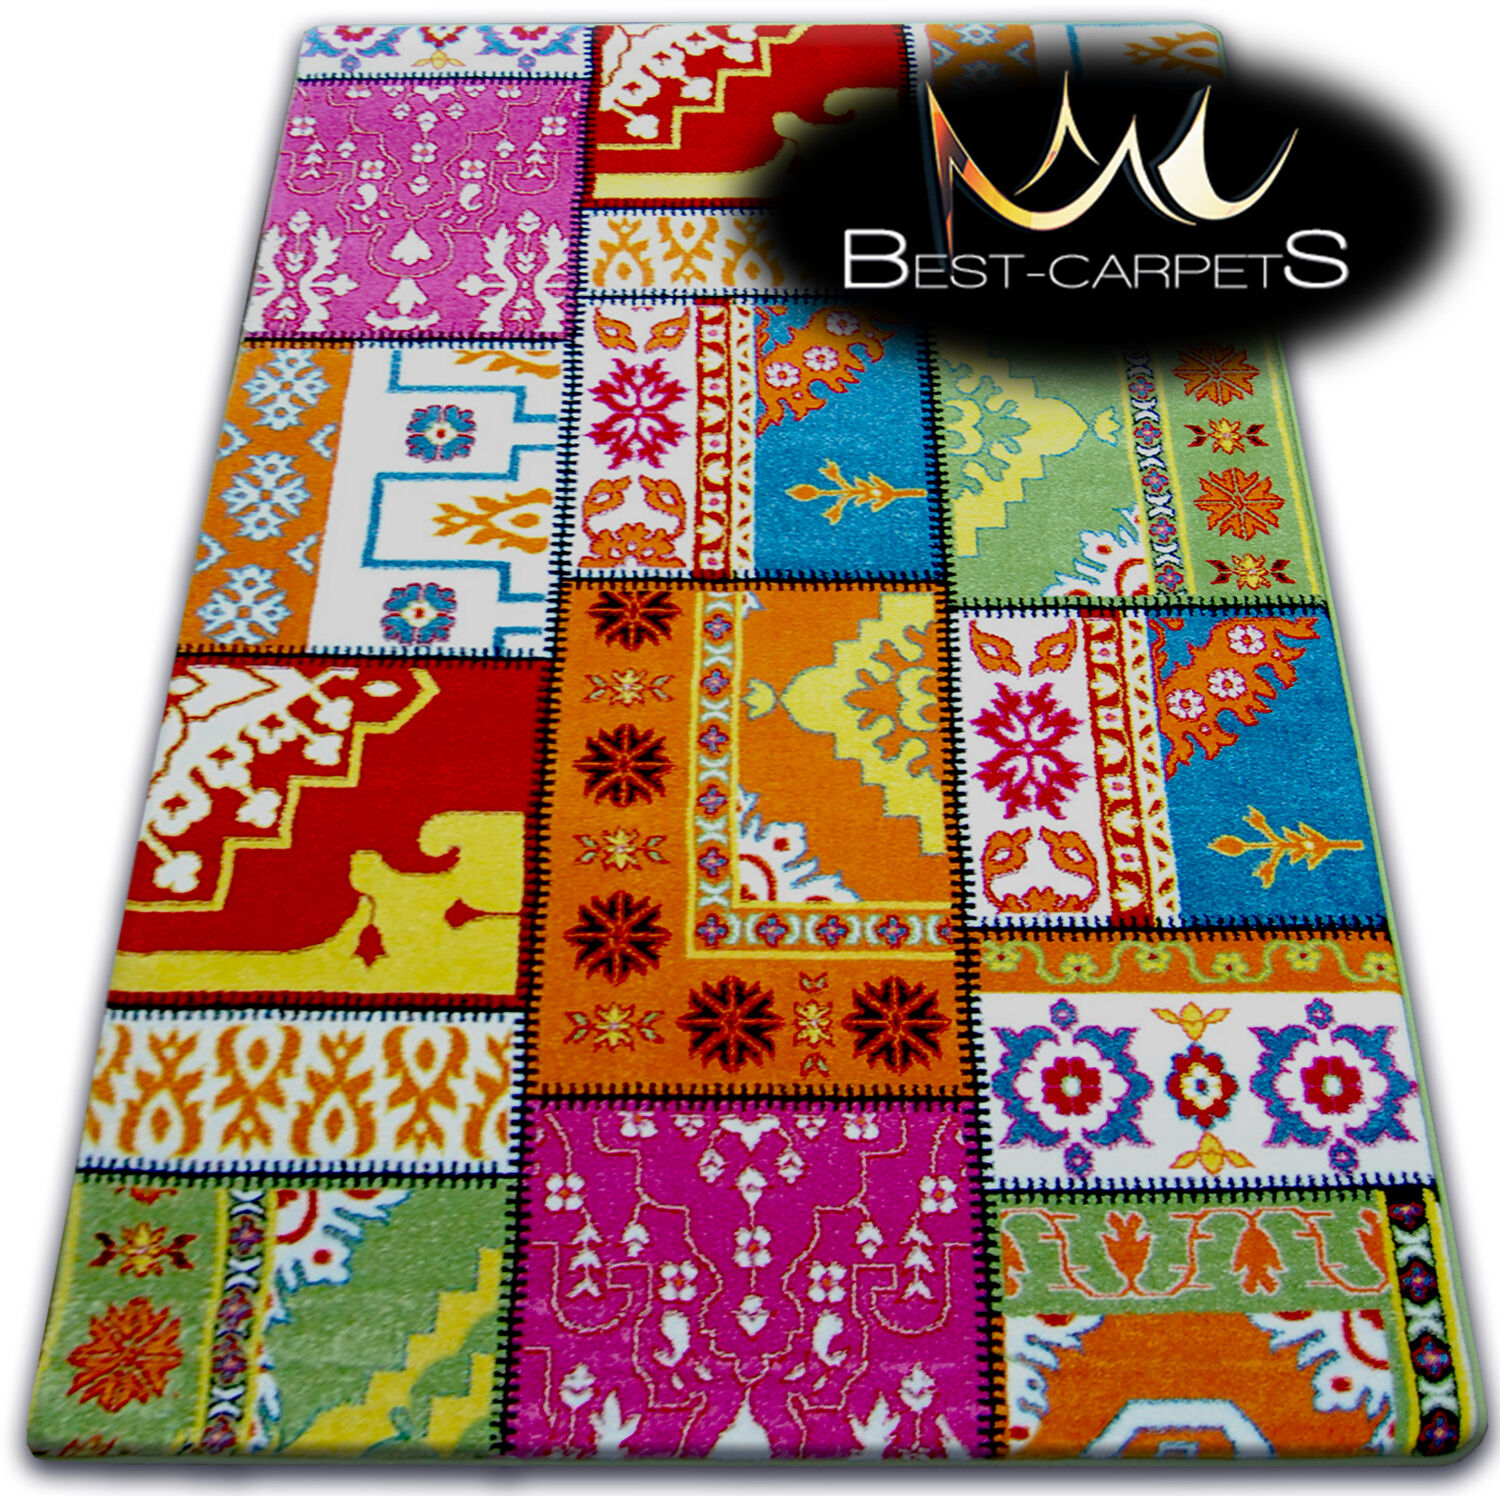 Thick MODERN RUGS 'PAINT' CARPETS ORIGINAL COLORFUL CREAM Ch